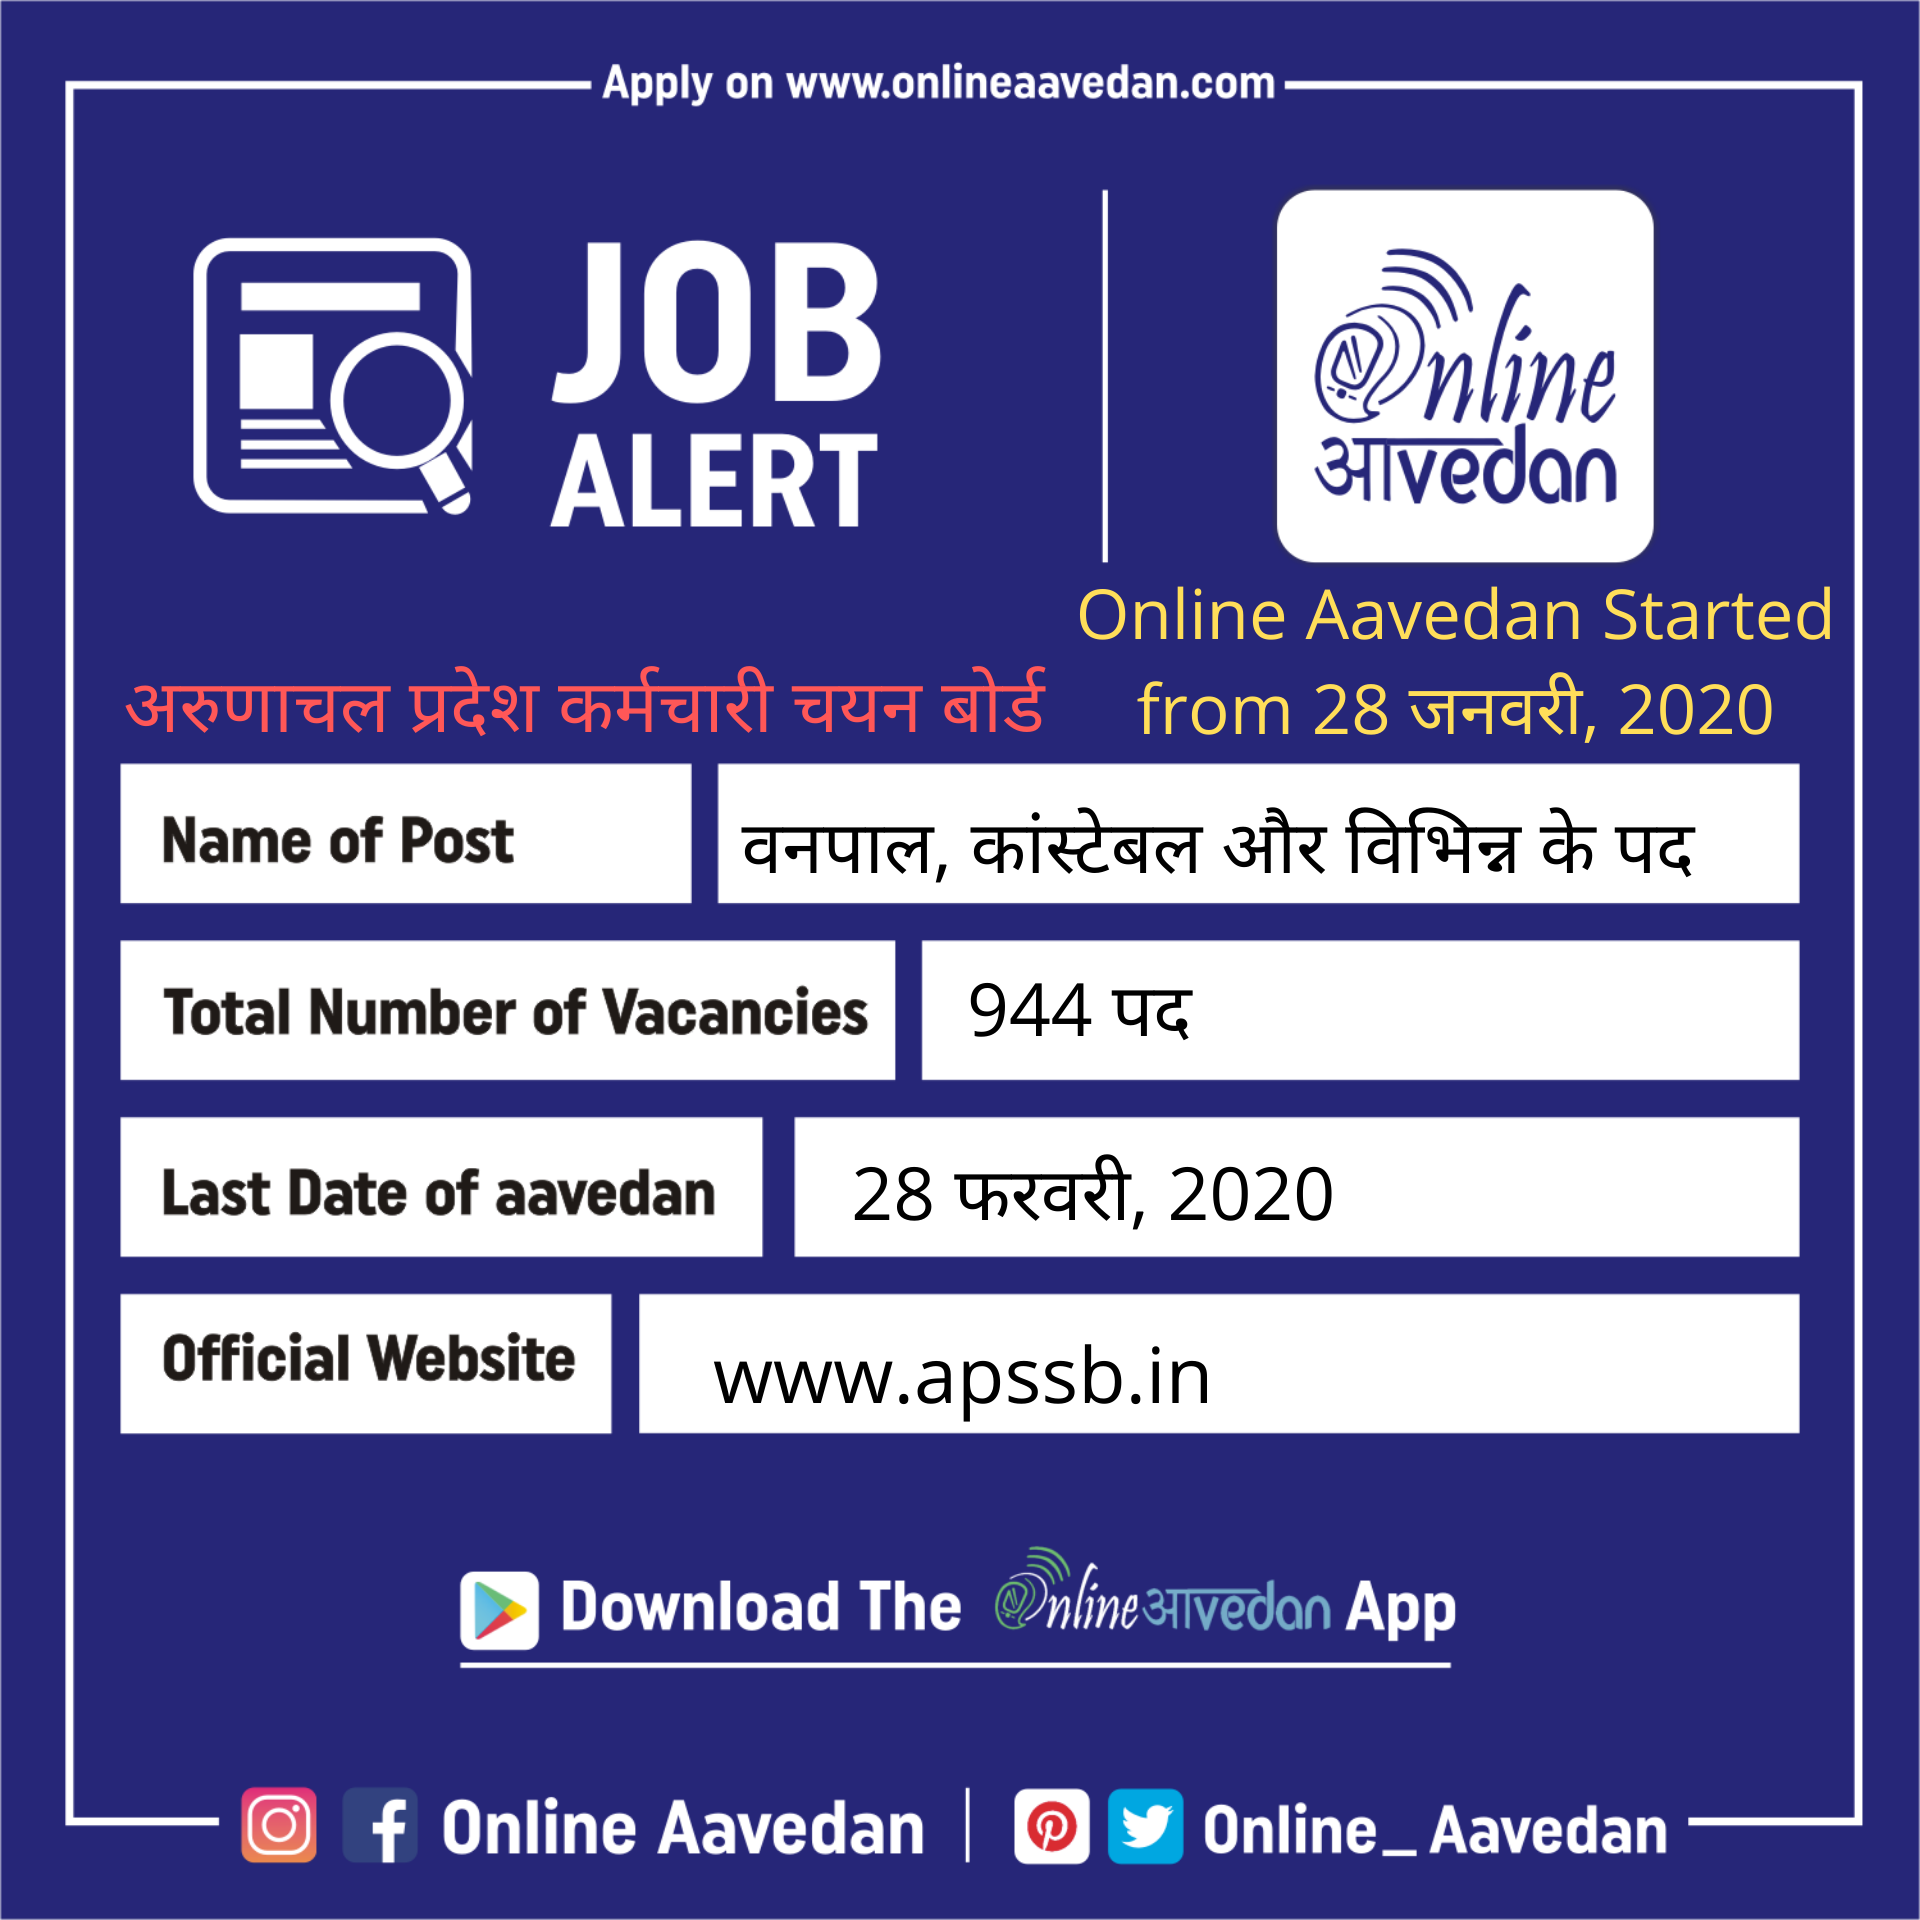 अर ण चल प रद श कर मच र चयन ब र ड Arunachal Pradesh Staff Selection Board Recruitment For The Post Of Forester Cons In 2020 Government Jobs Medical Jobs Police Jobs